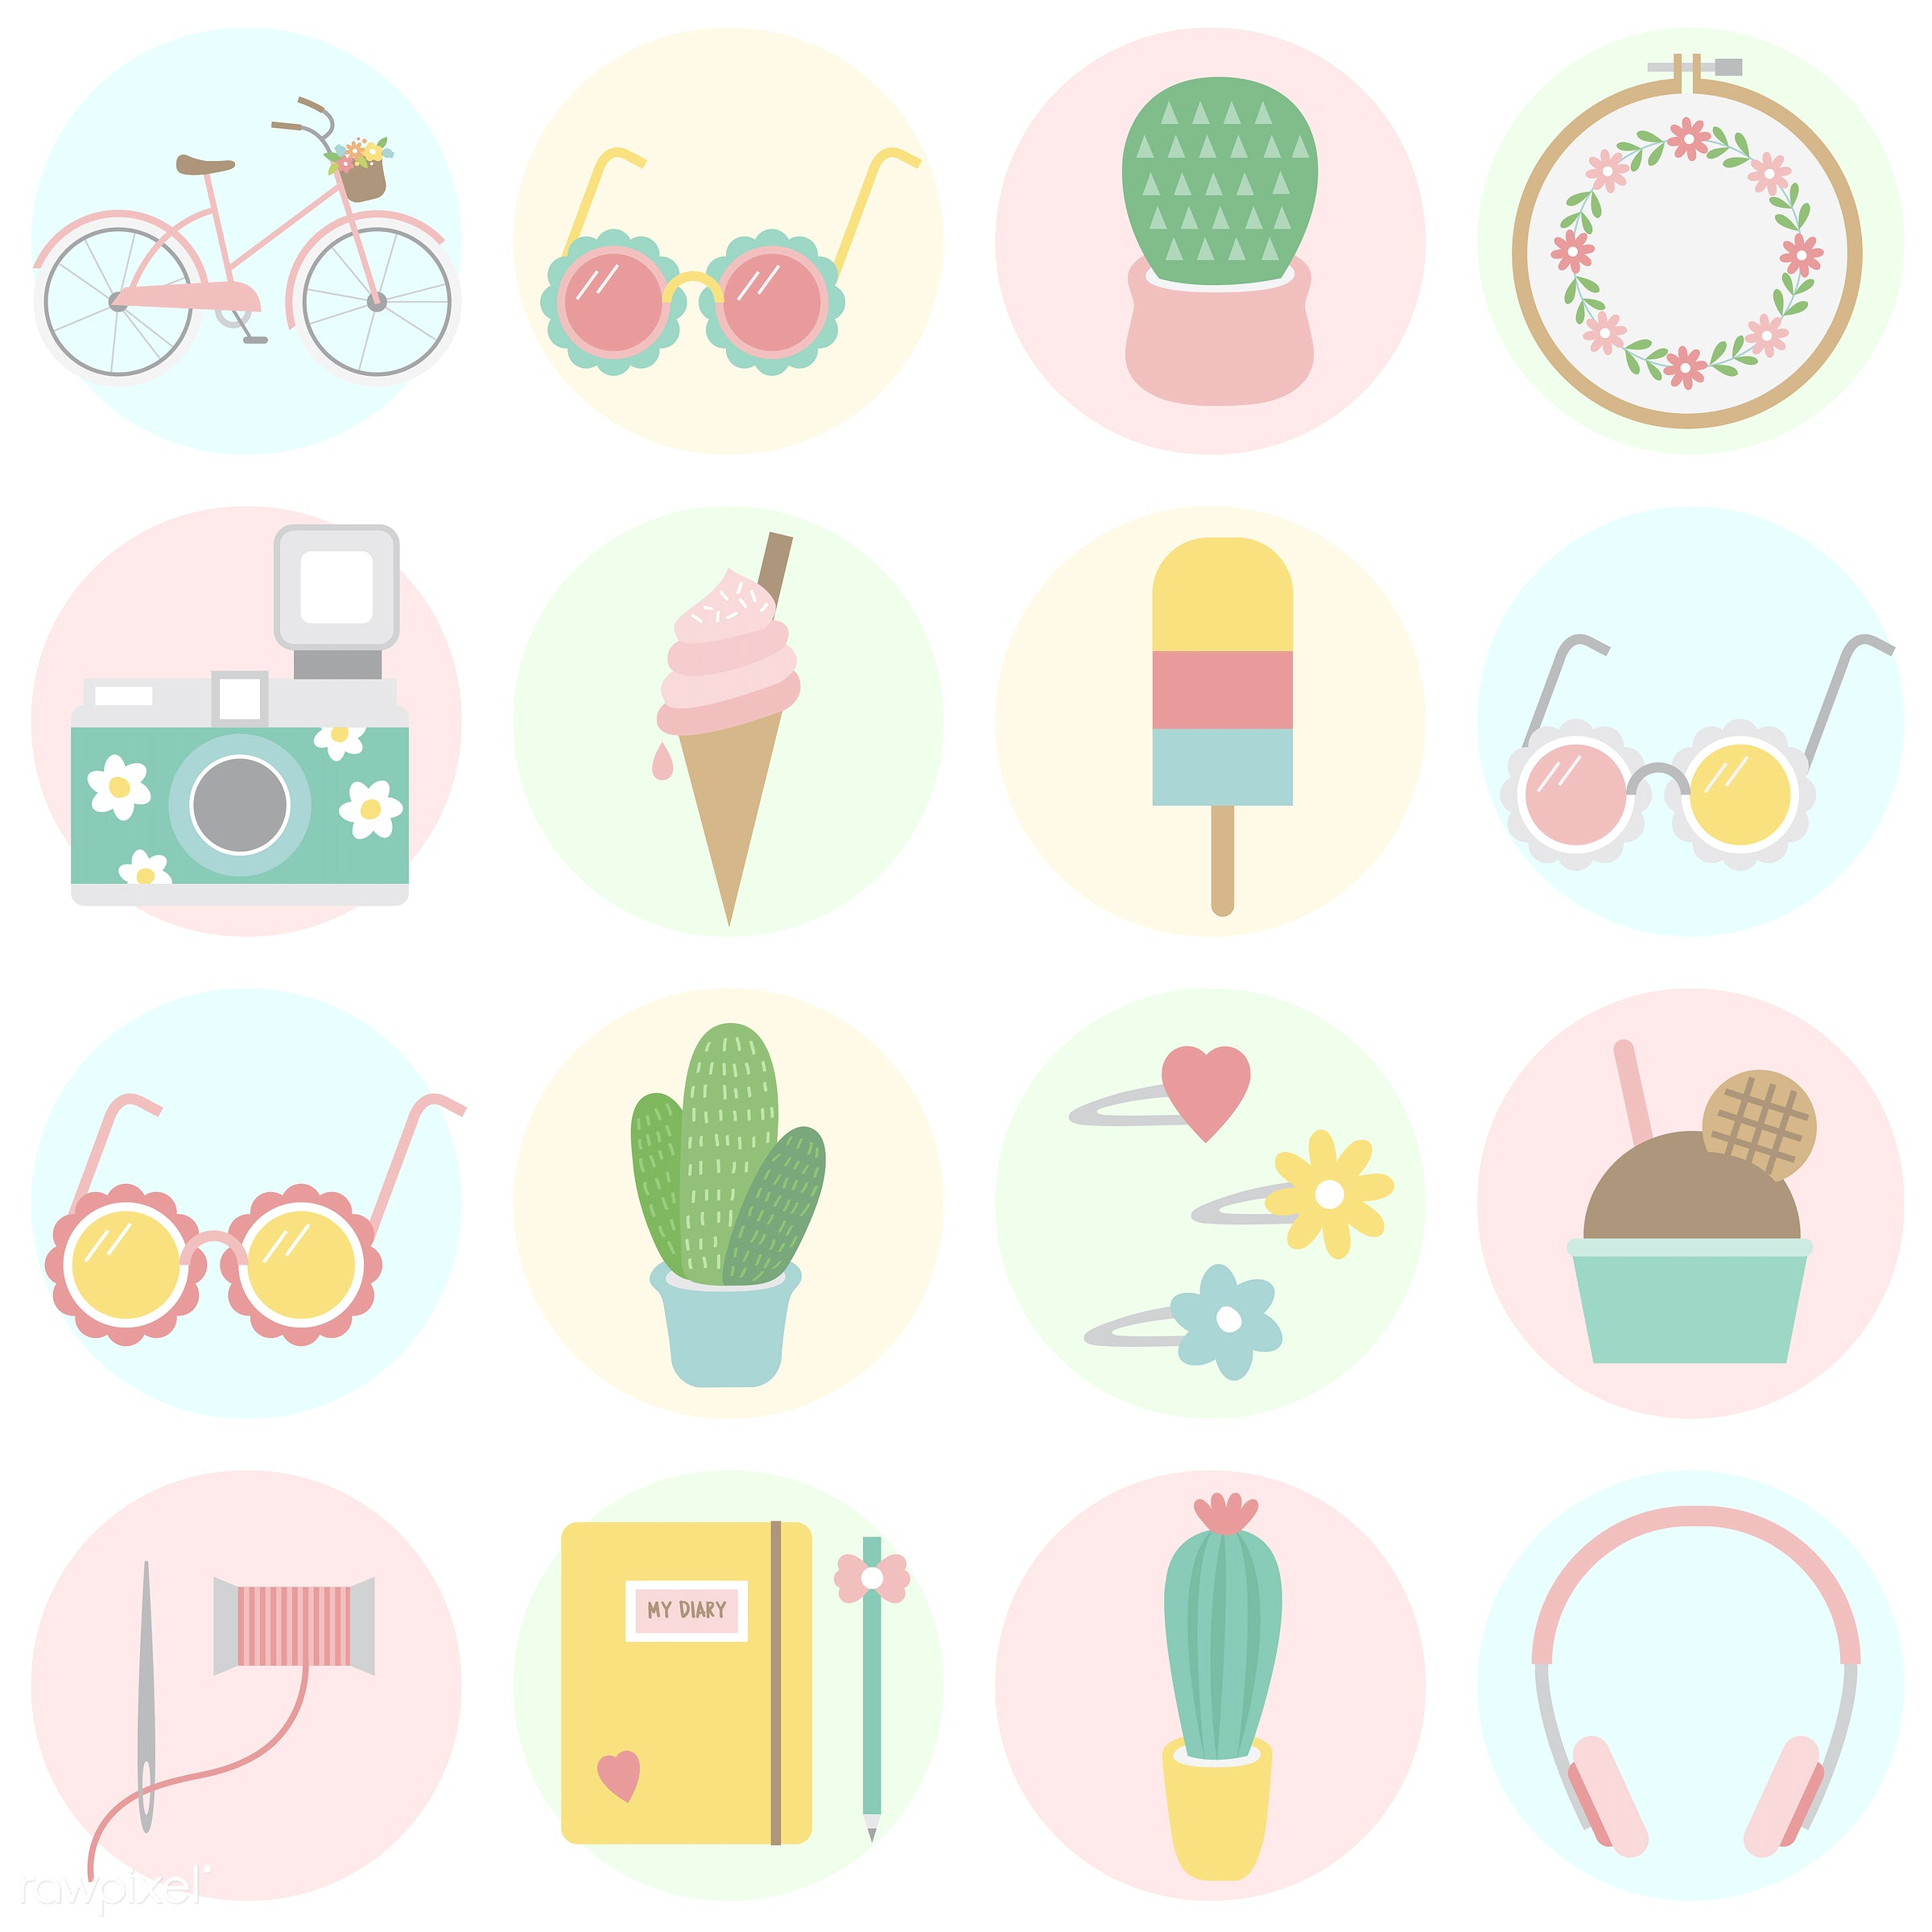 vector, illustration, graphic, cute, sweet, girly, pastel, collection, set, summer, summertime, hobbies, leisure, relaxation...